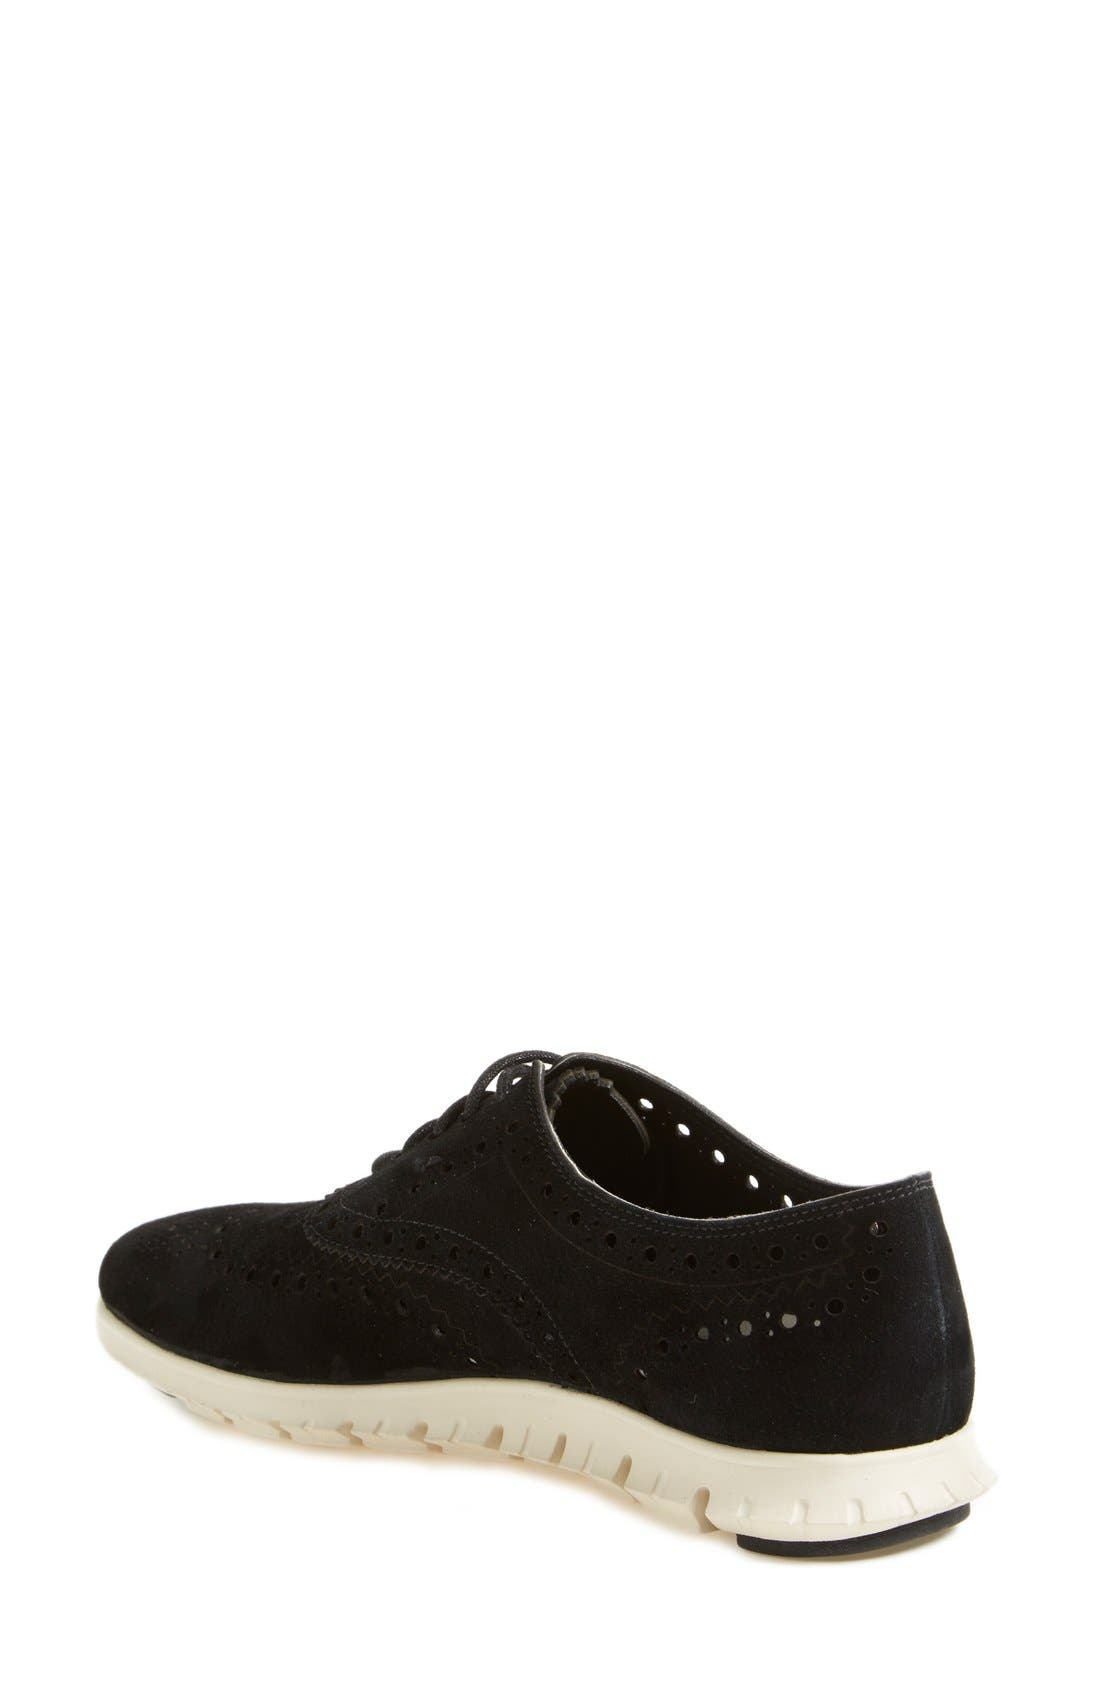 'ZeroGrand' Perforated Wingtip,                             Alternate thumbnail 36, color,